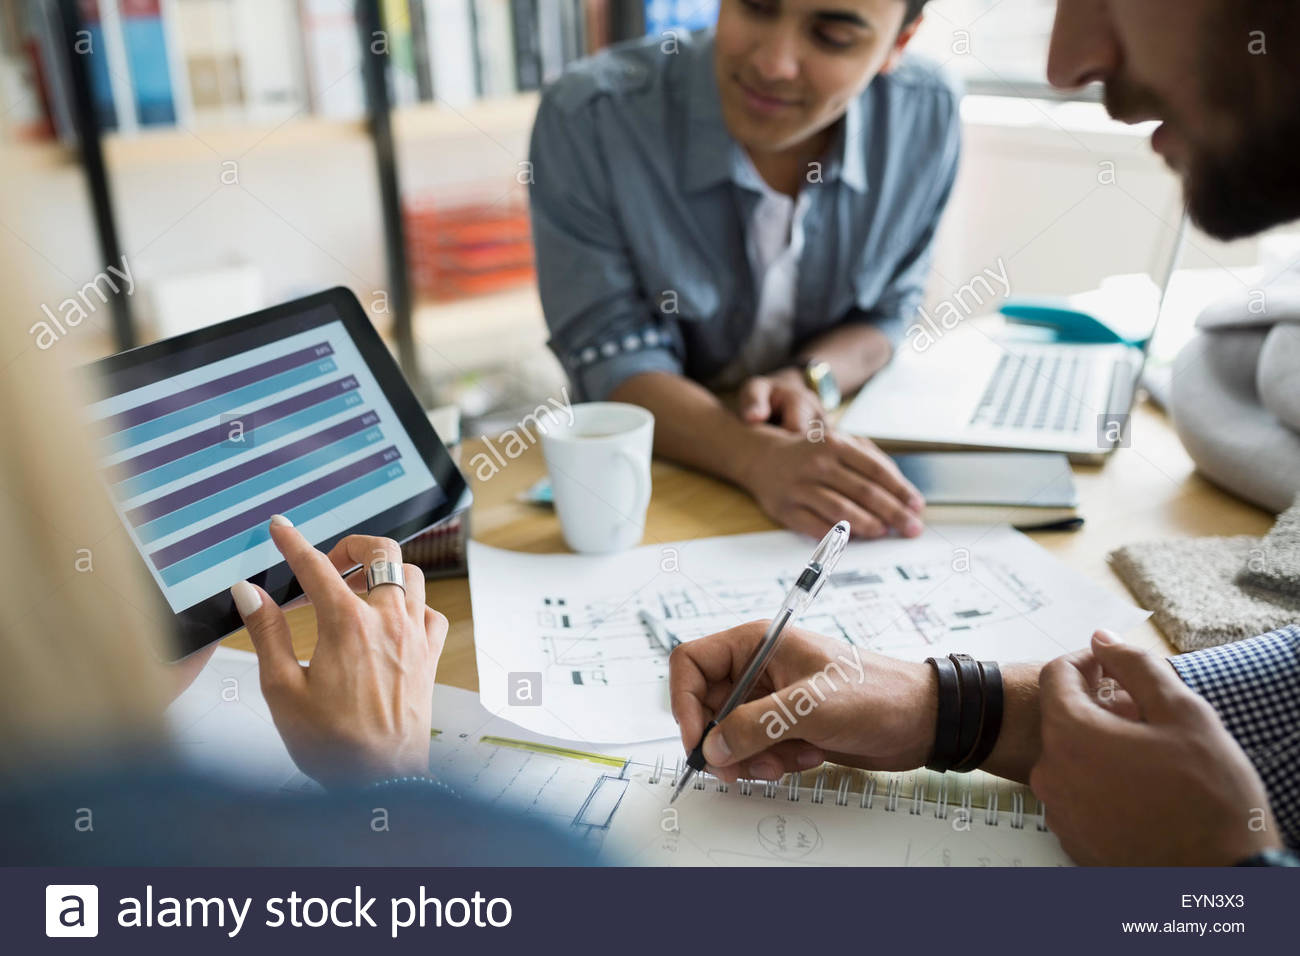 Architects with blueprints using digital tablet in meeting - Stock Image